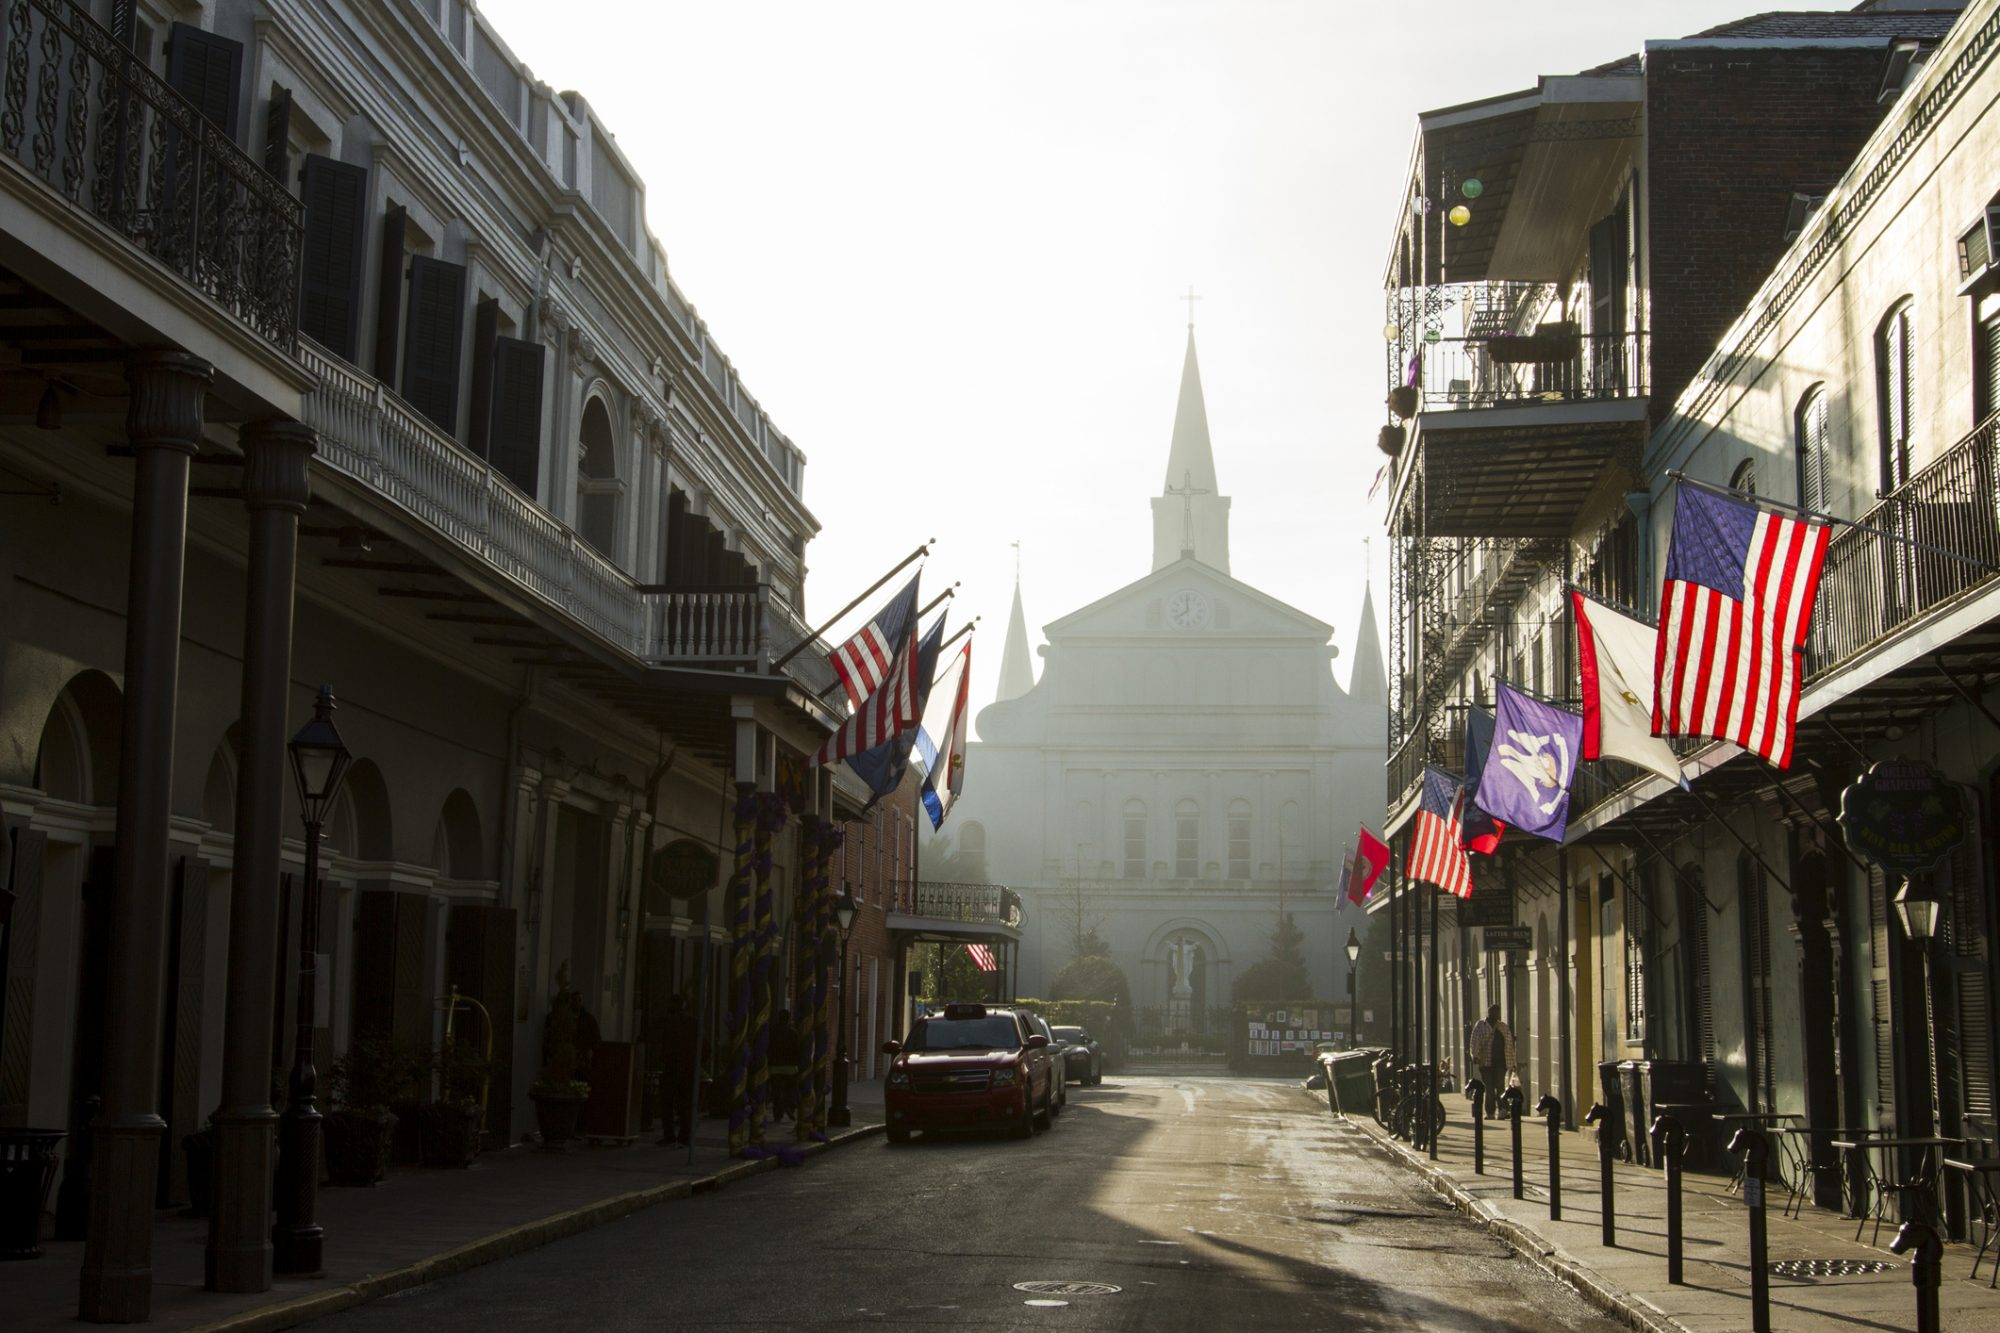 Muggy Day in New Orleans